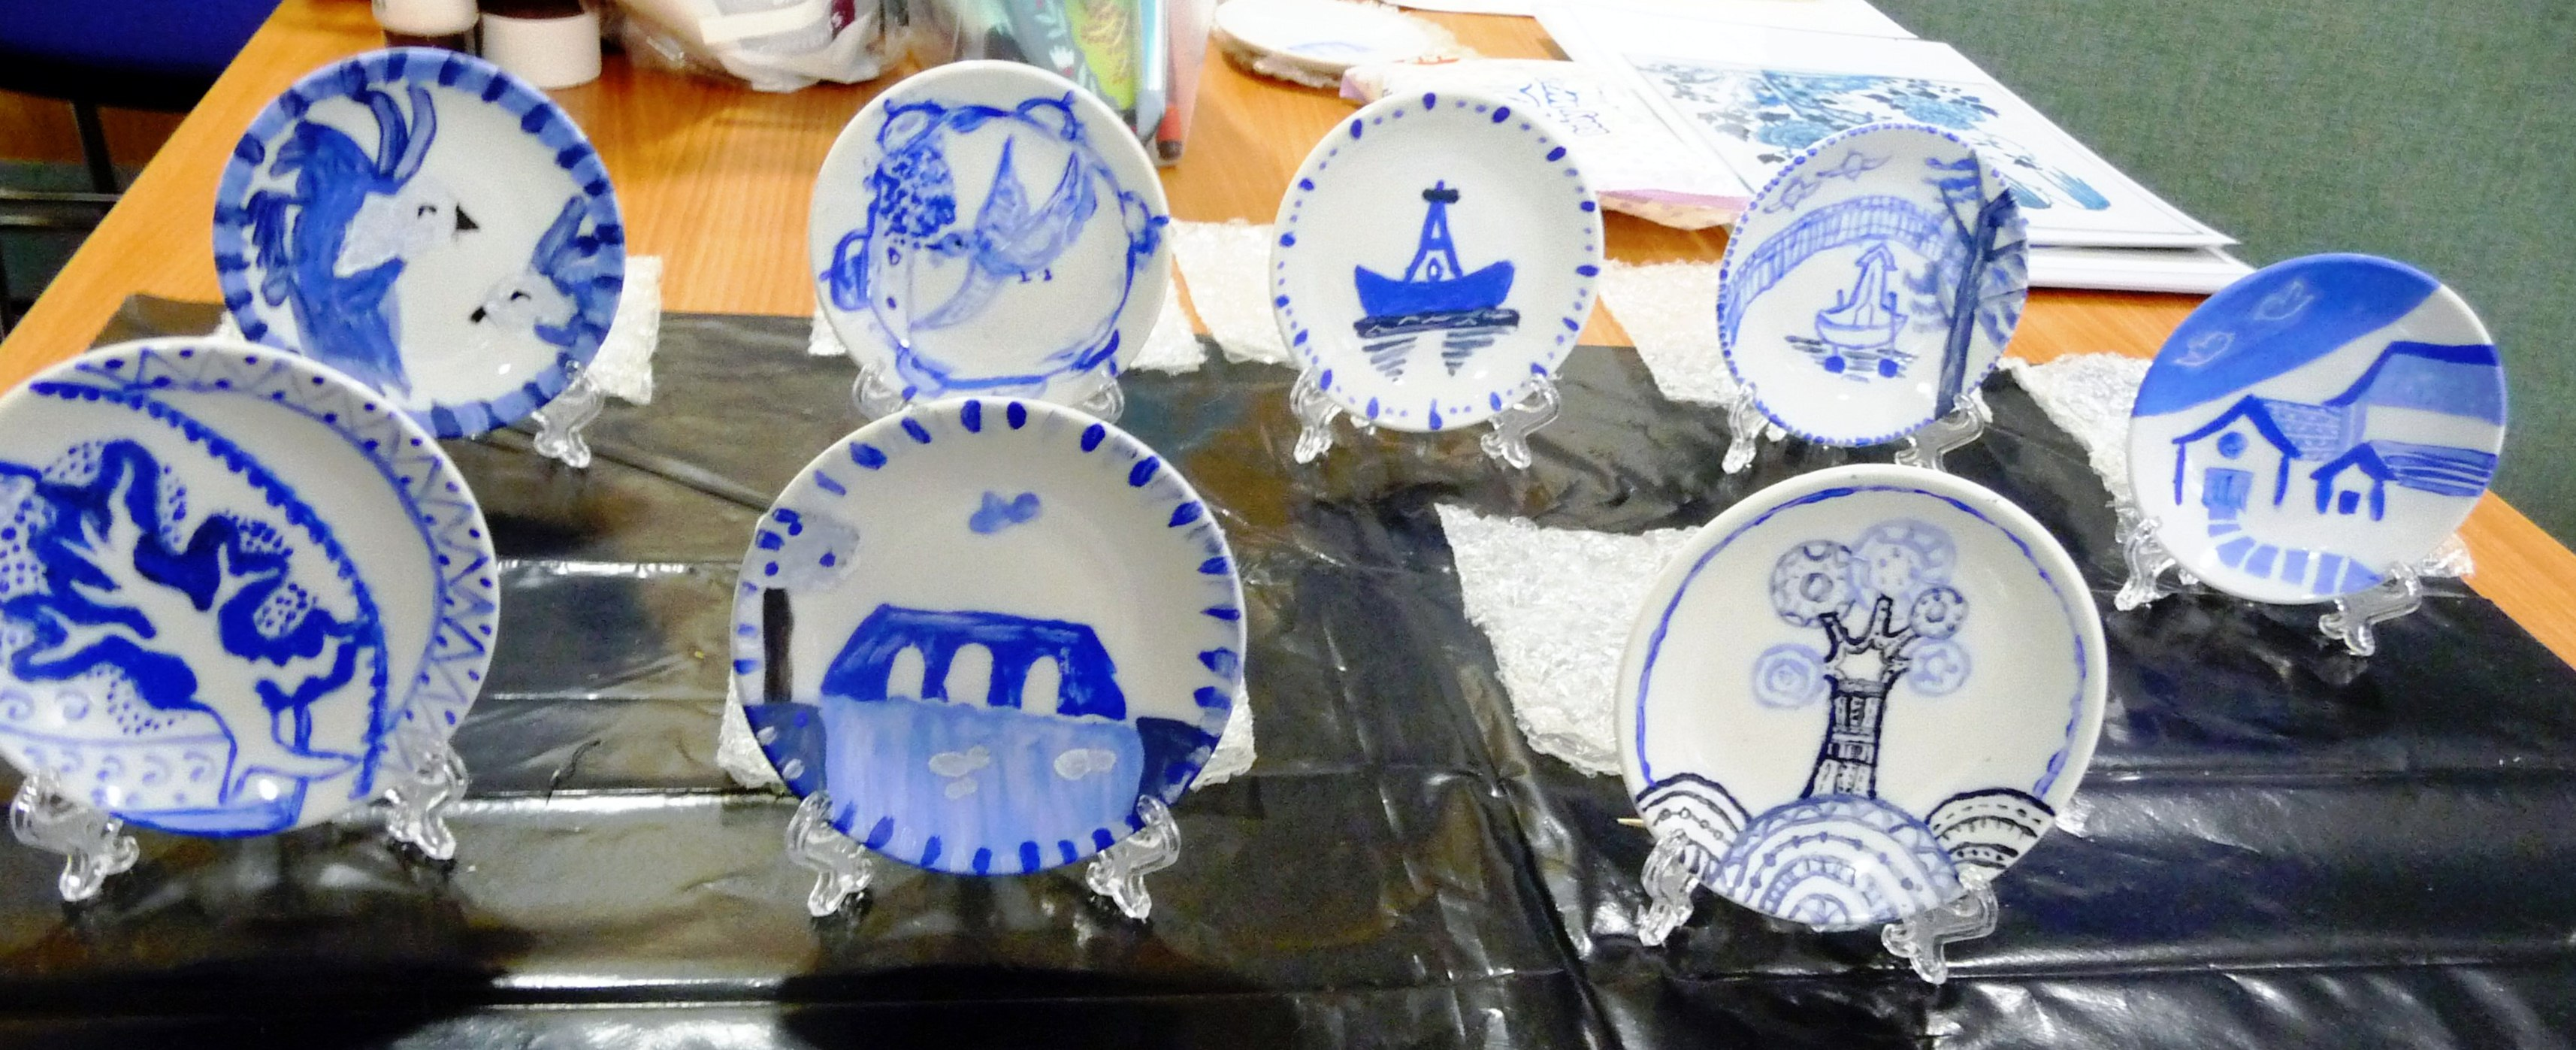 some of our YE group's completed blue and white painted plates based on the willow pattern